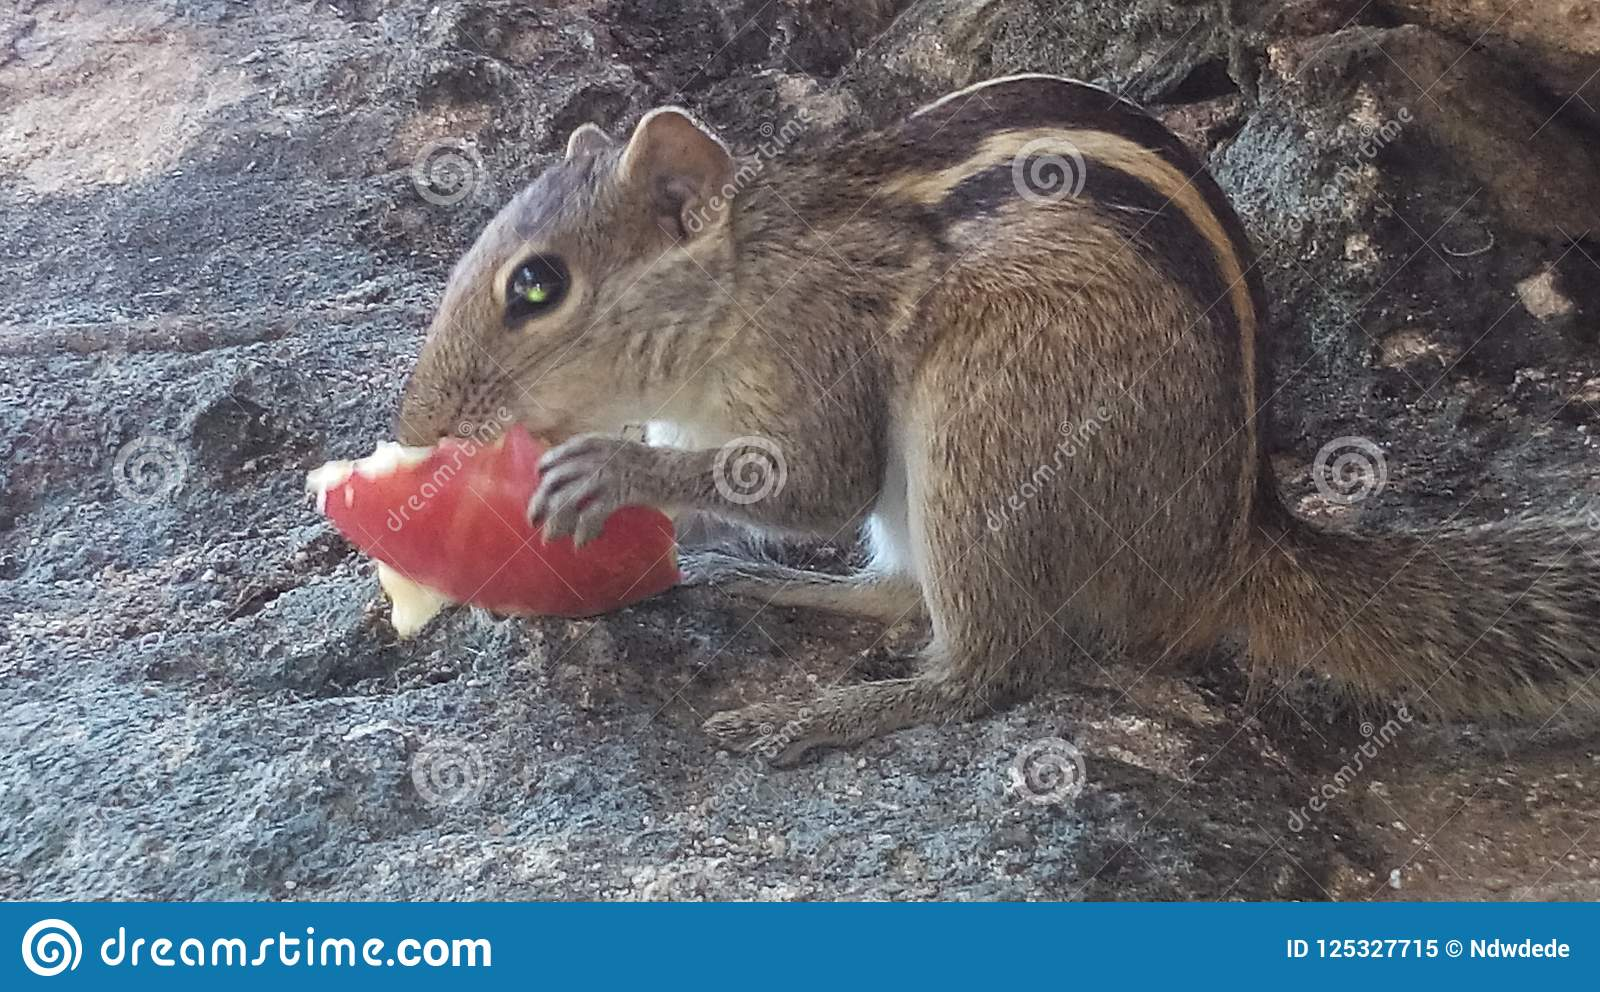 Innocent squirrel eating an apple